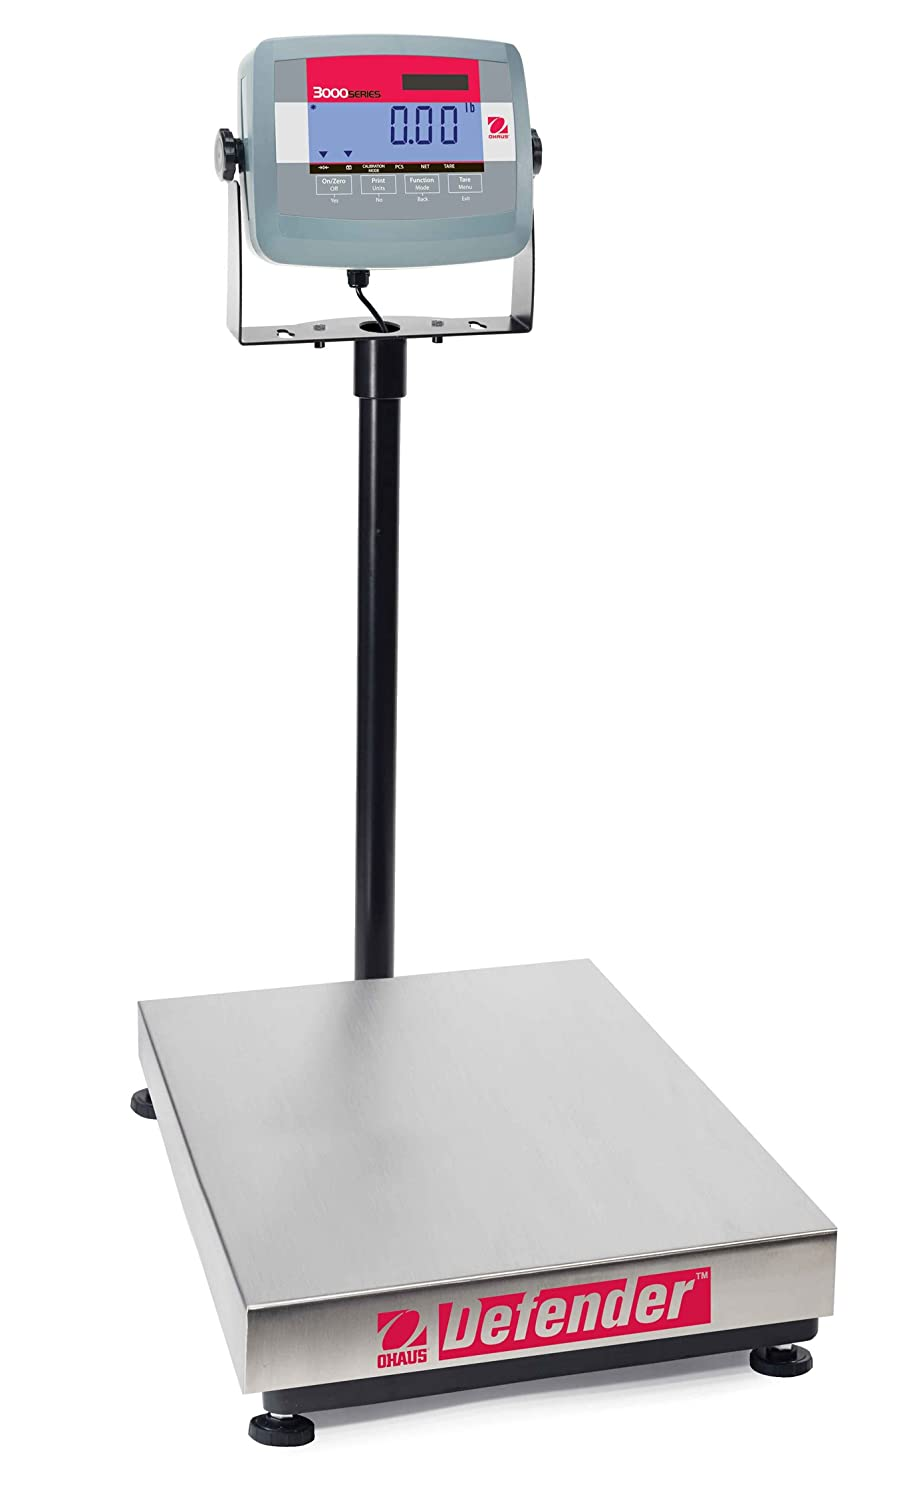 Ohaus Defender 3000standard Series Bench scale, Ohaus Defender: D31P150BL